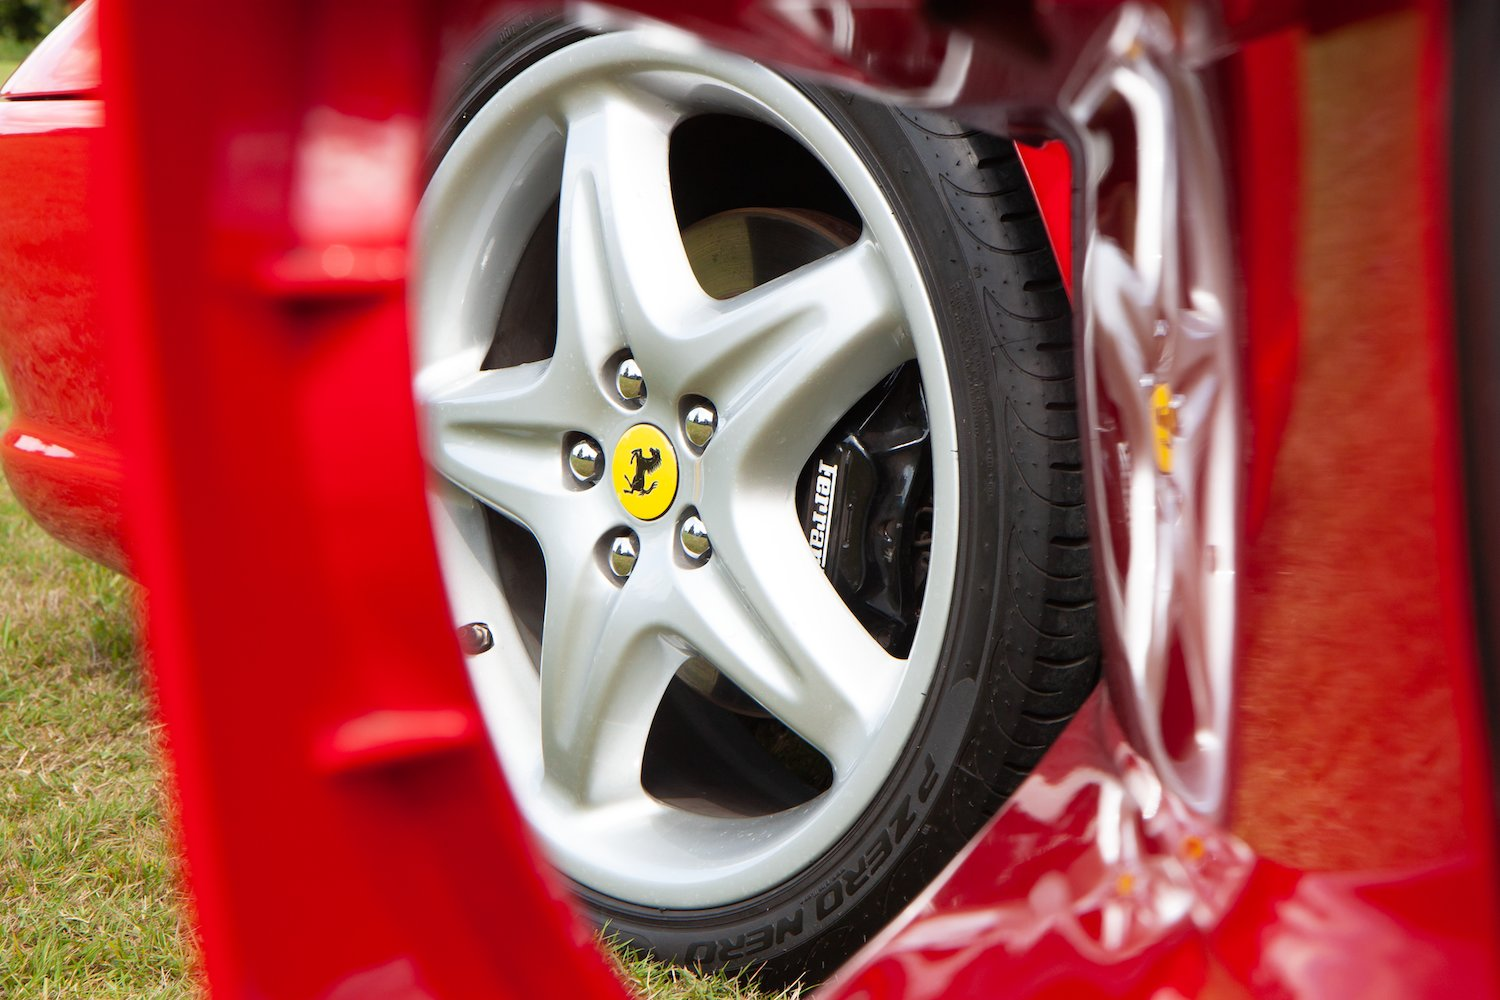 1996 Ferrari F355 Spider Manual LHD For Sale (picture 5 of 6)